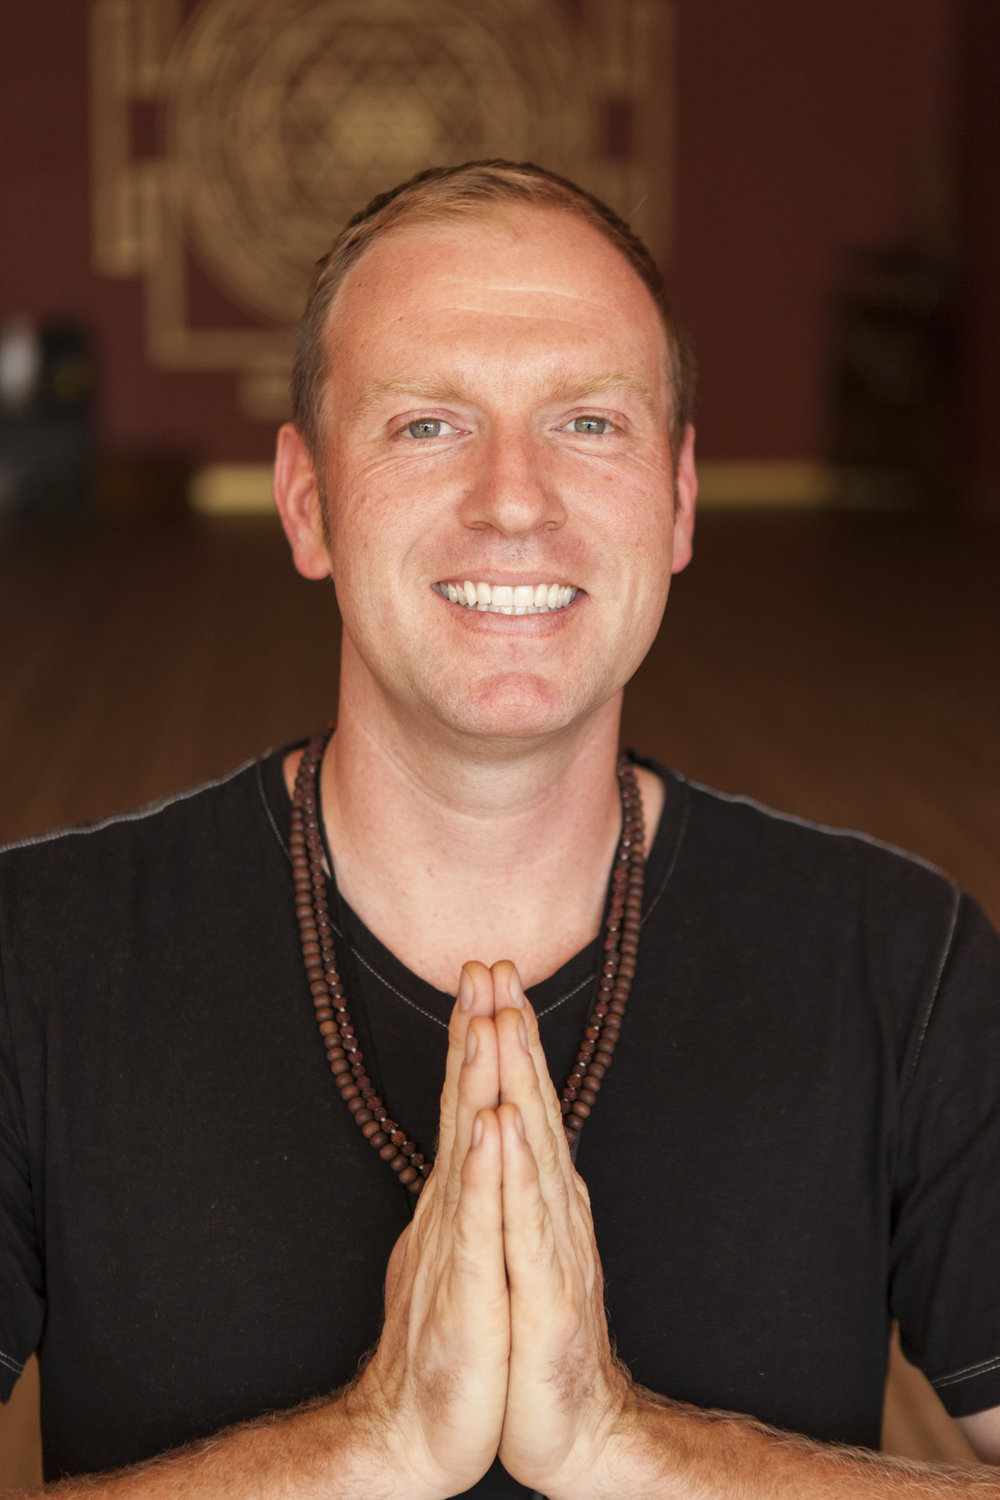 Jason Miller CMT    Founder / Therapist - With a passion for holistic ideals and the intention of bringing wellness to each member of his clientele, Jason Miller stands out as an experienced and well-versed holistic massage therapist. He is proficient in a wide range of massage & wellness modalities, such as neuromuscular deep tissue, structural balancing, athletic conditioning / rehabilitation, lymphatic / circulatory Tx, advanced cupping therapies, NIR reiki energy healing and the list goes on. A certified leader, he has held numerous workshops, continued education training's,  and has lobbied at state and national levels for education. He is the Program Director at Panacea Holistic Institute and the southwest educator for the ICTA International Cupping Therapy Association.Jason is a certified massage therapist, internationally certified cupping therapist, yoga instructor, educator, sound healer, light & energy worker, wellness advocate, visionary, sensei level Reiki practitioner and conscious business owner. He strives to engage in expanding his growing knowledge & understanding in the art and journey of healing.He has worked at USATF indoor & outdoor national masters champions and worlds since 2010. Jason competes for So Cal Track Club, Winning nation championships in Shot put and other throw events in USATF track and field competition. His working experience as an athletic therapist includes ironman, triathlons, marathons, national and international track and field championships, community walk / 5k / 10k events and field games.Jason's personable manner along with his altruistic ethics has resulted in many referrals as well as a great rapport with clients and fellow therapists. He continues to develop his skills as a holistic therapist, instructor and yogi in Laguna Beach and Long Beach, California, focusing on long-term holistic care directed toward community well-being.